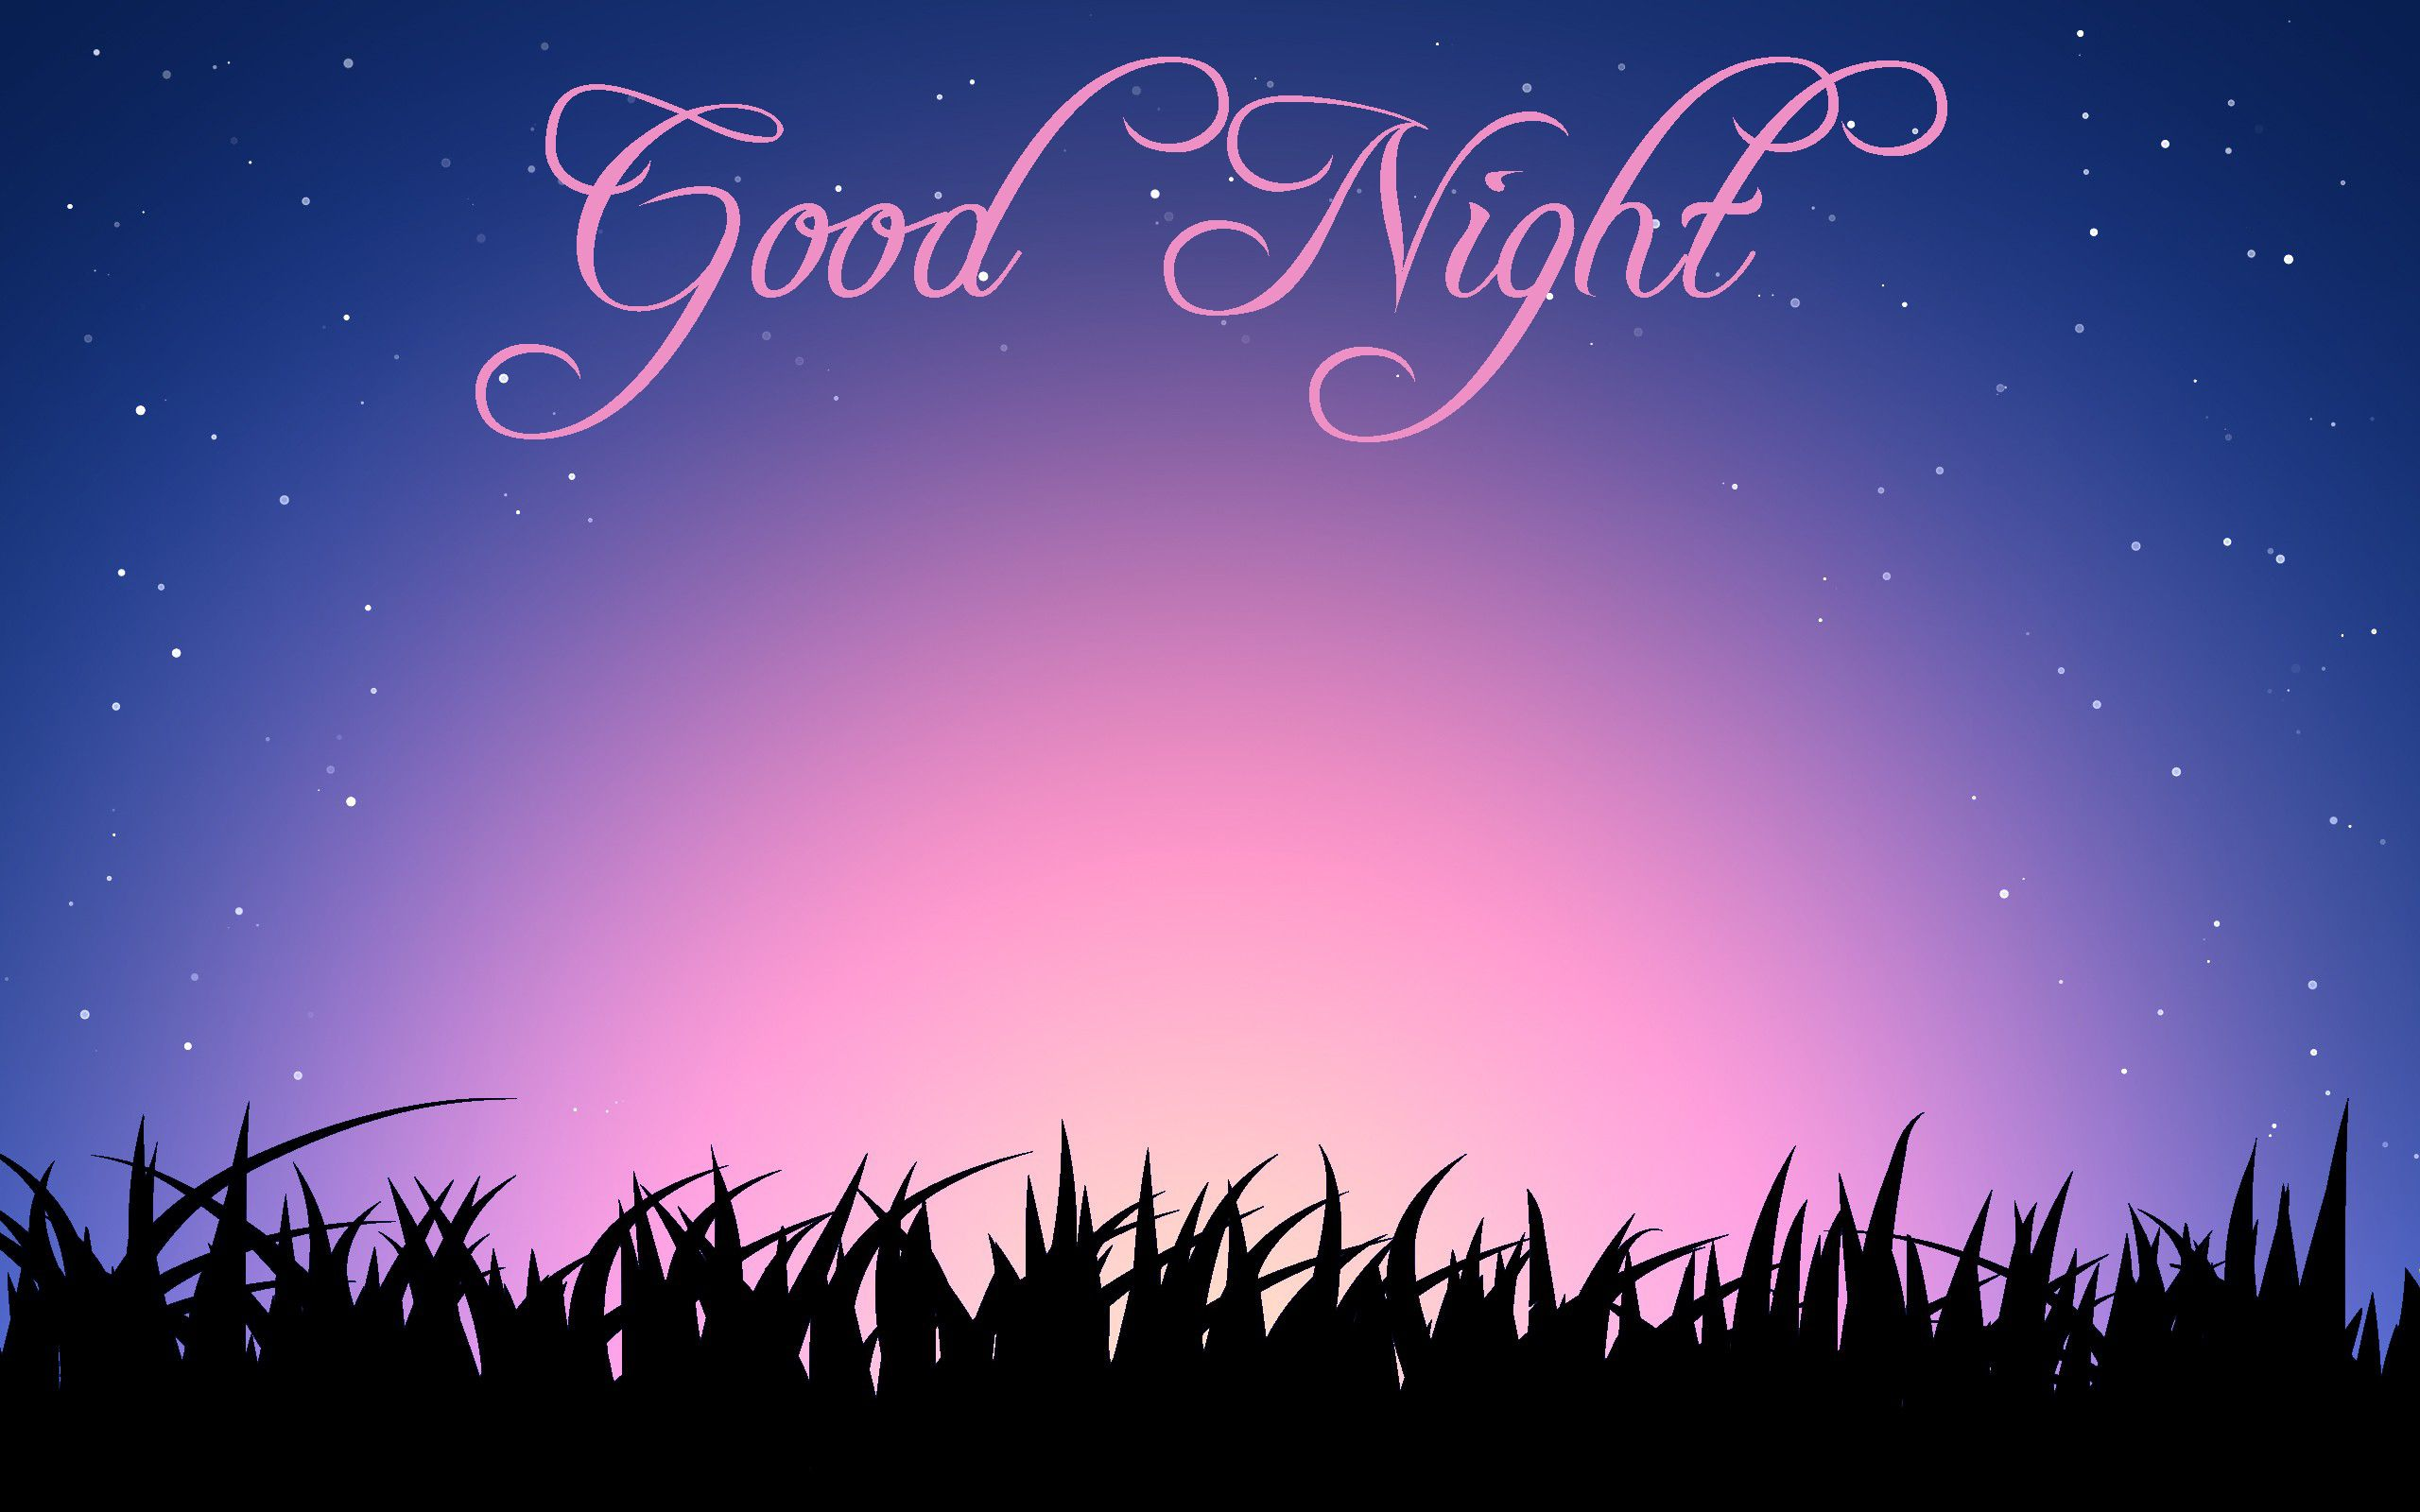 Send Good Night sms online or text it to the your love to wish her